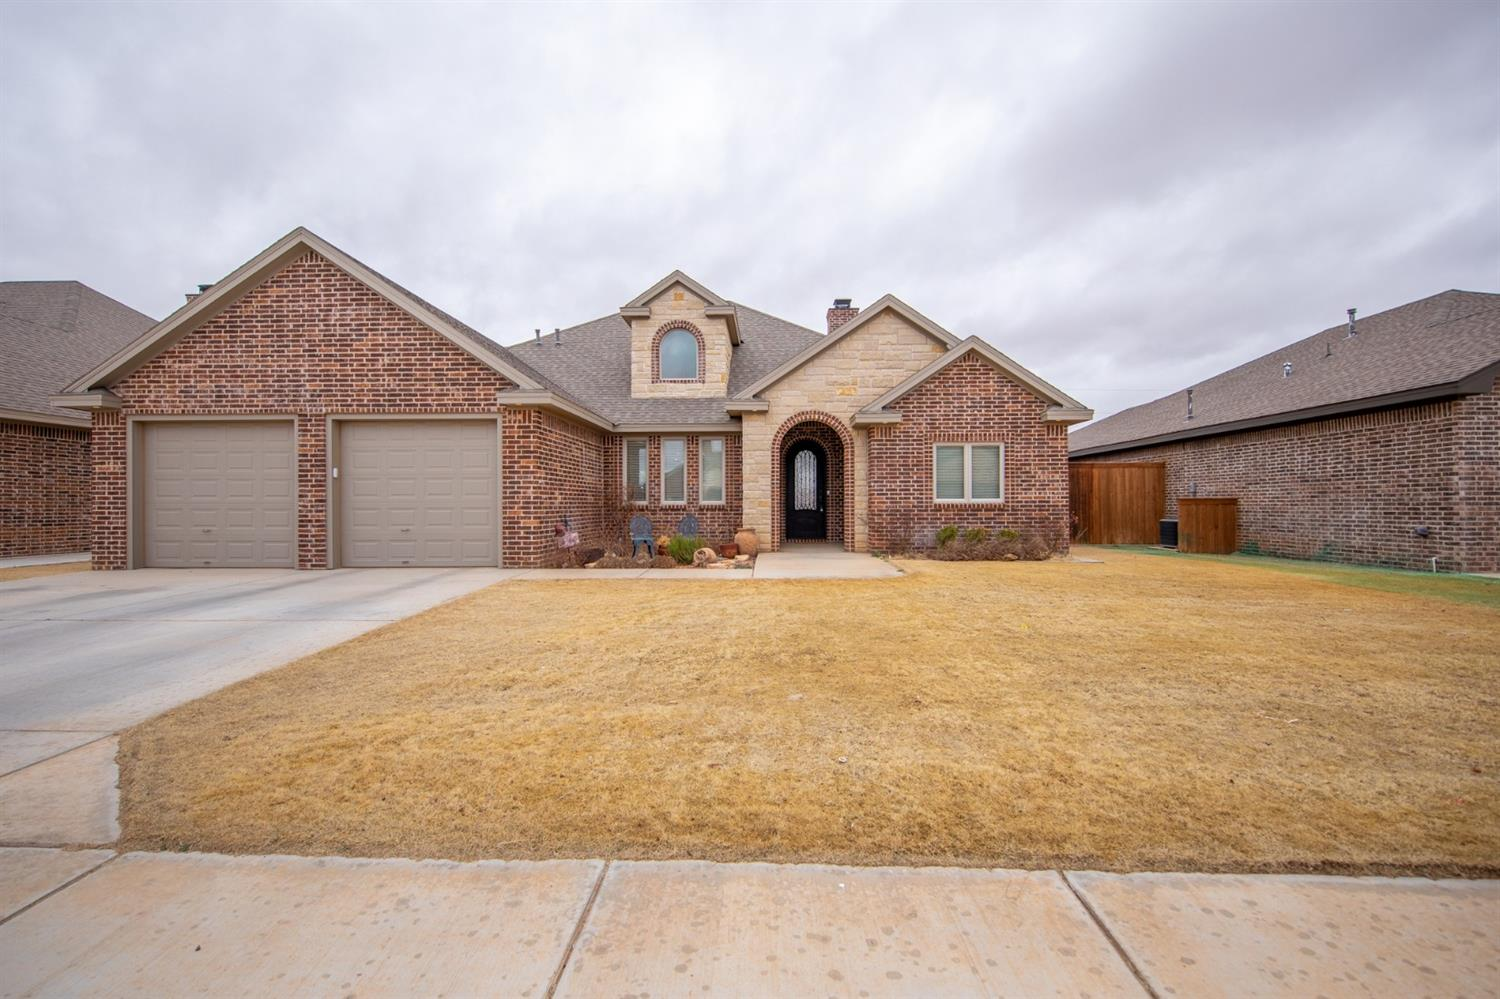 Located in Shallowater Texas!! Great place to call home. This open design allows for easy living with spacious rooms. Front formal dining. Living and kitchen combination. 4 bedrooms, 3 baths plus office area. A must see. Built by Truitt Garland.